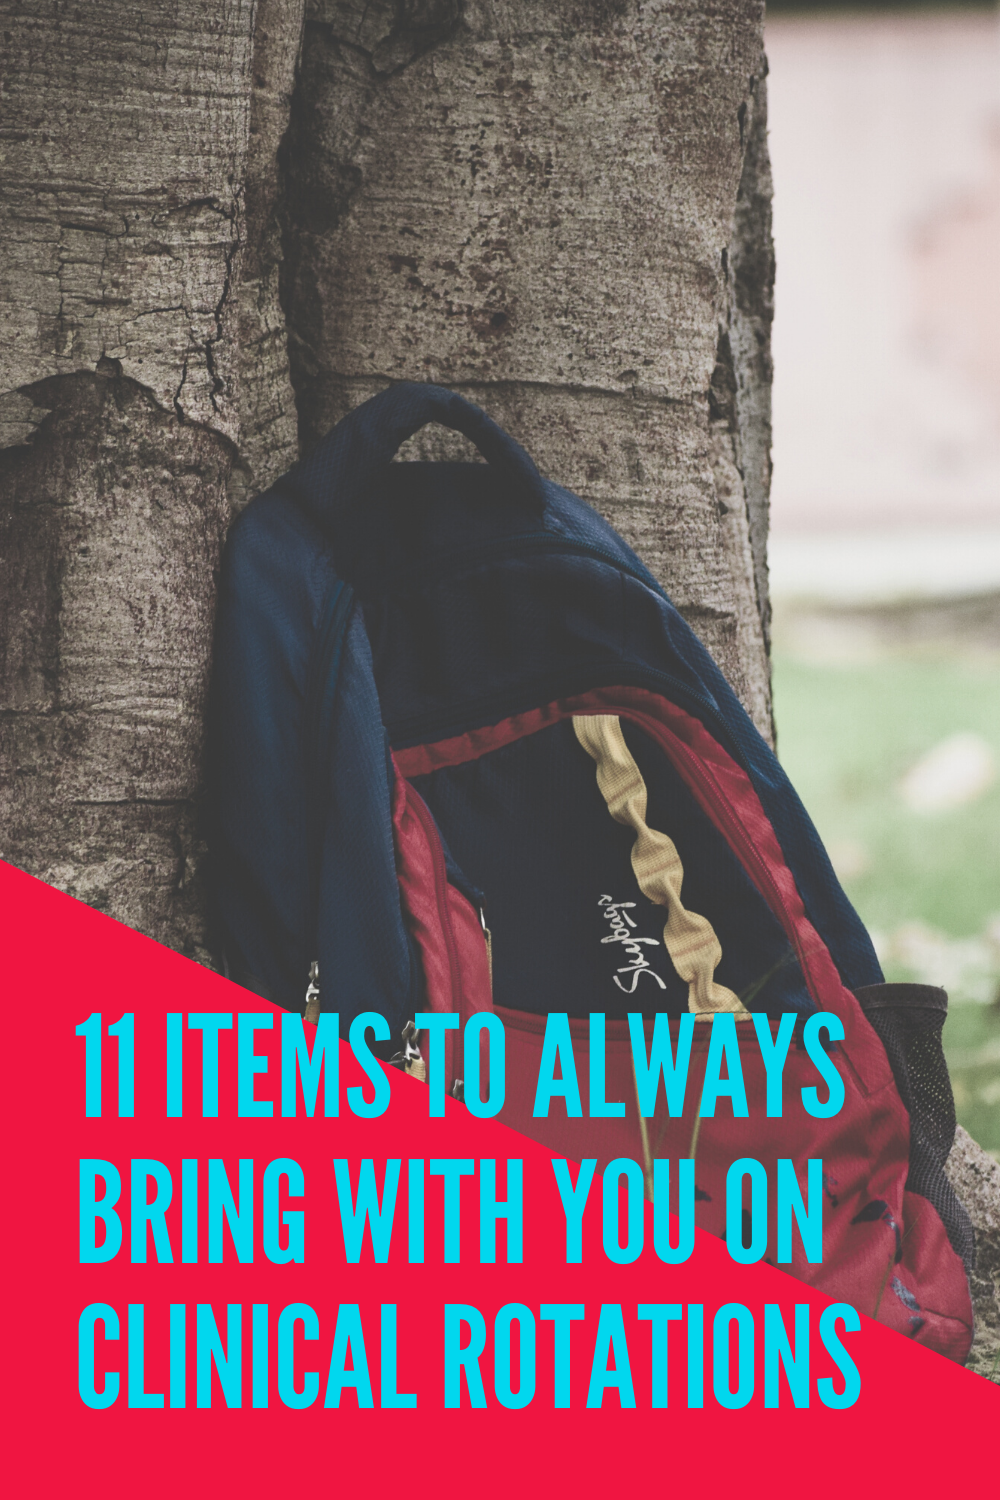 What to bring on your clinical rotations | Nurse